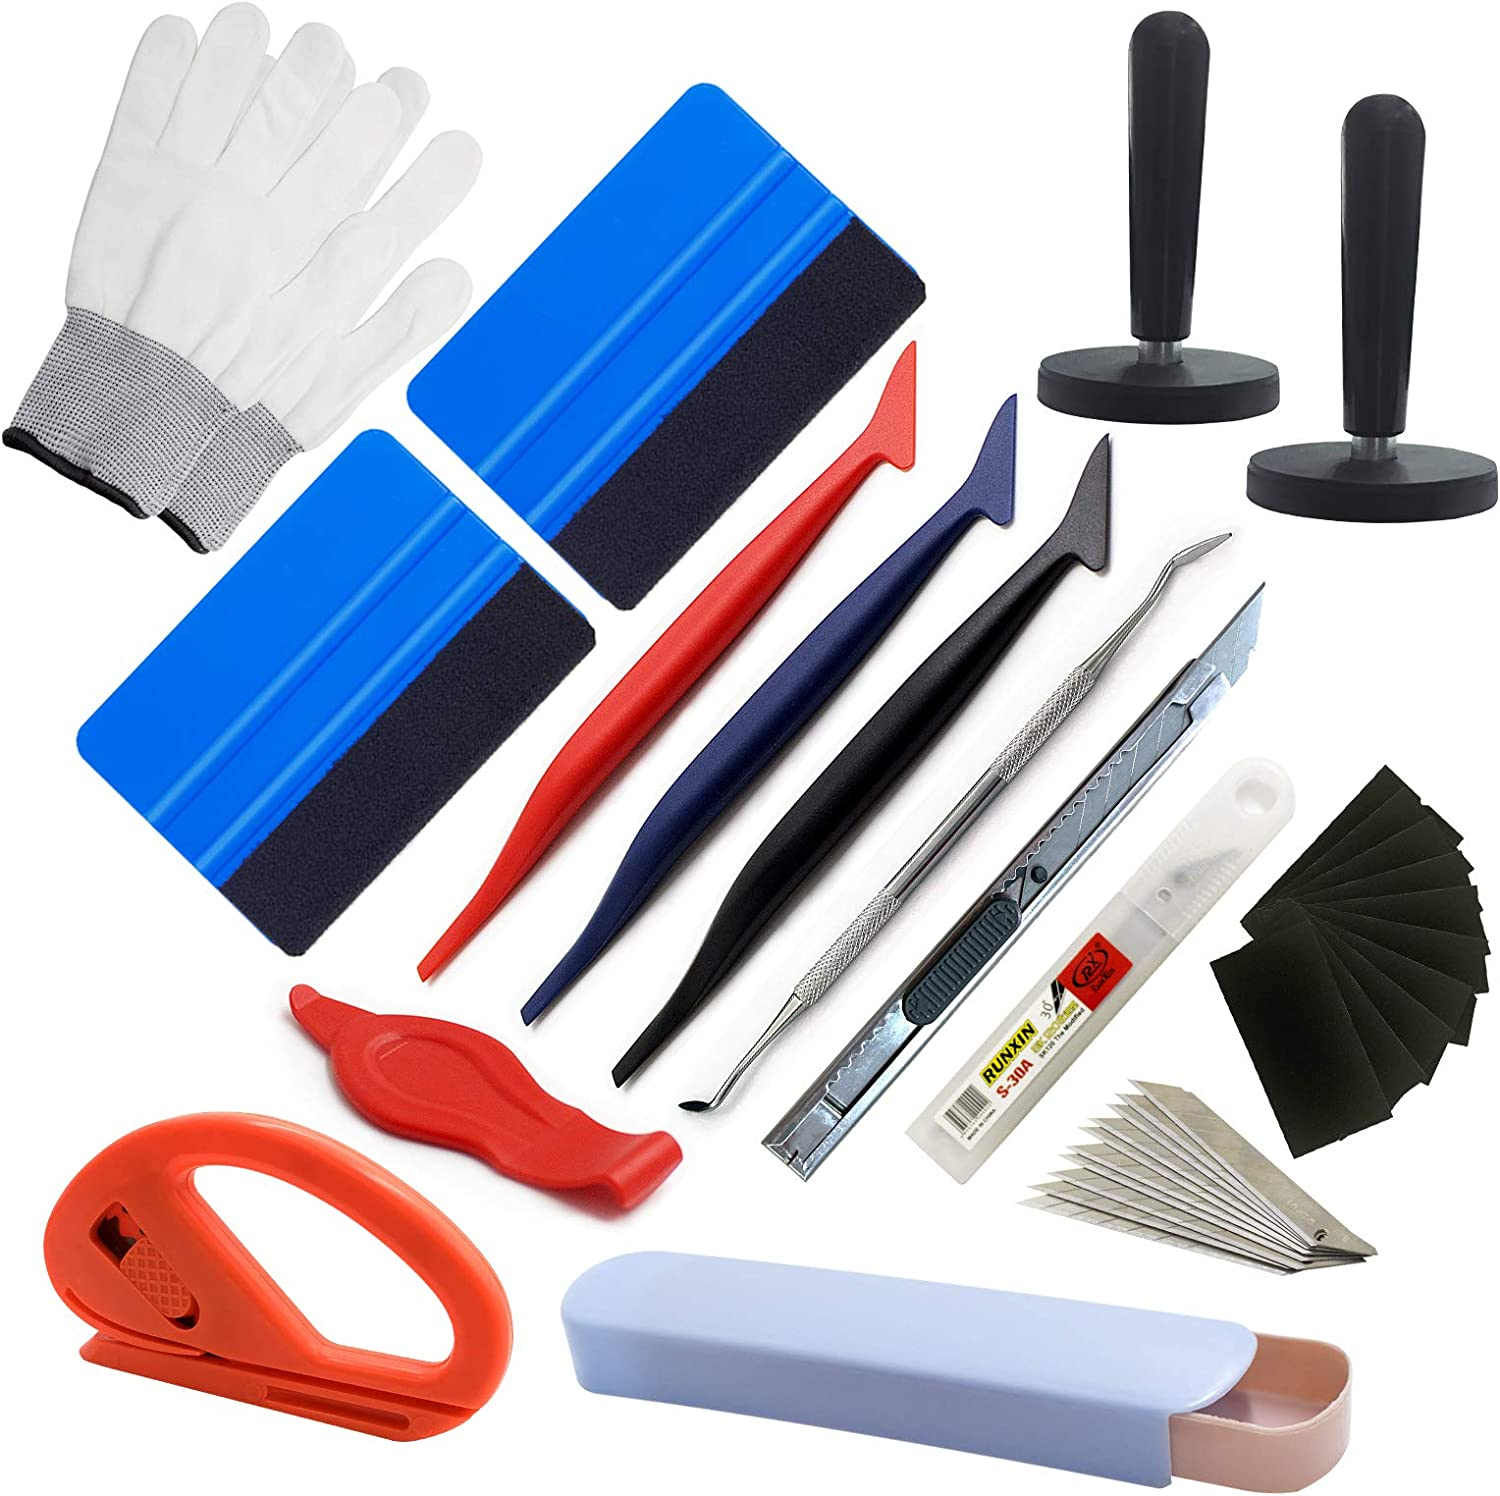 Black Conqueror Squeegee Snitty Safety Vinyl Cutter SETLUX 28 Pcs Vinyl Car Wrapping Tint Vehicle Window Glass Protective Film Installing Tool Includes Rubber Squeegee with Handle Felt Squeegees